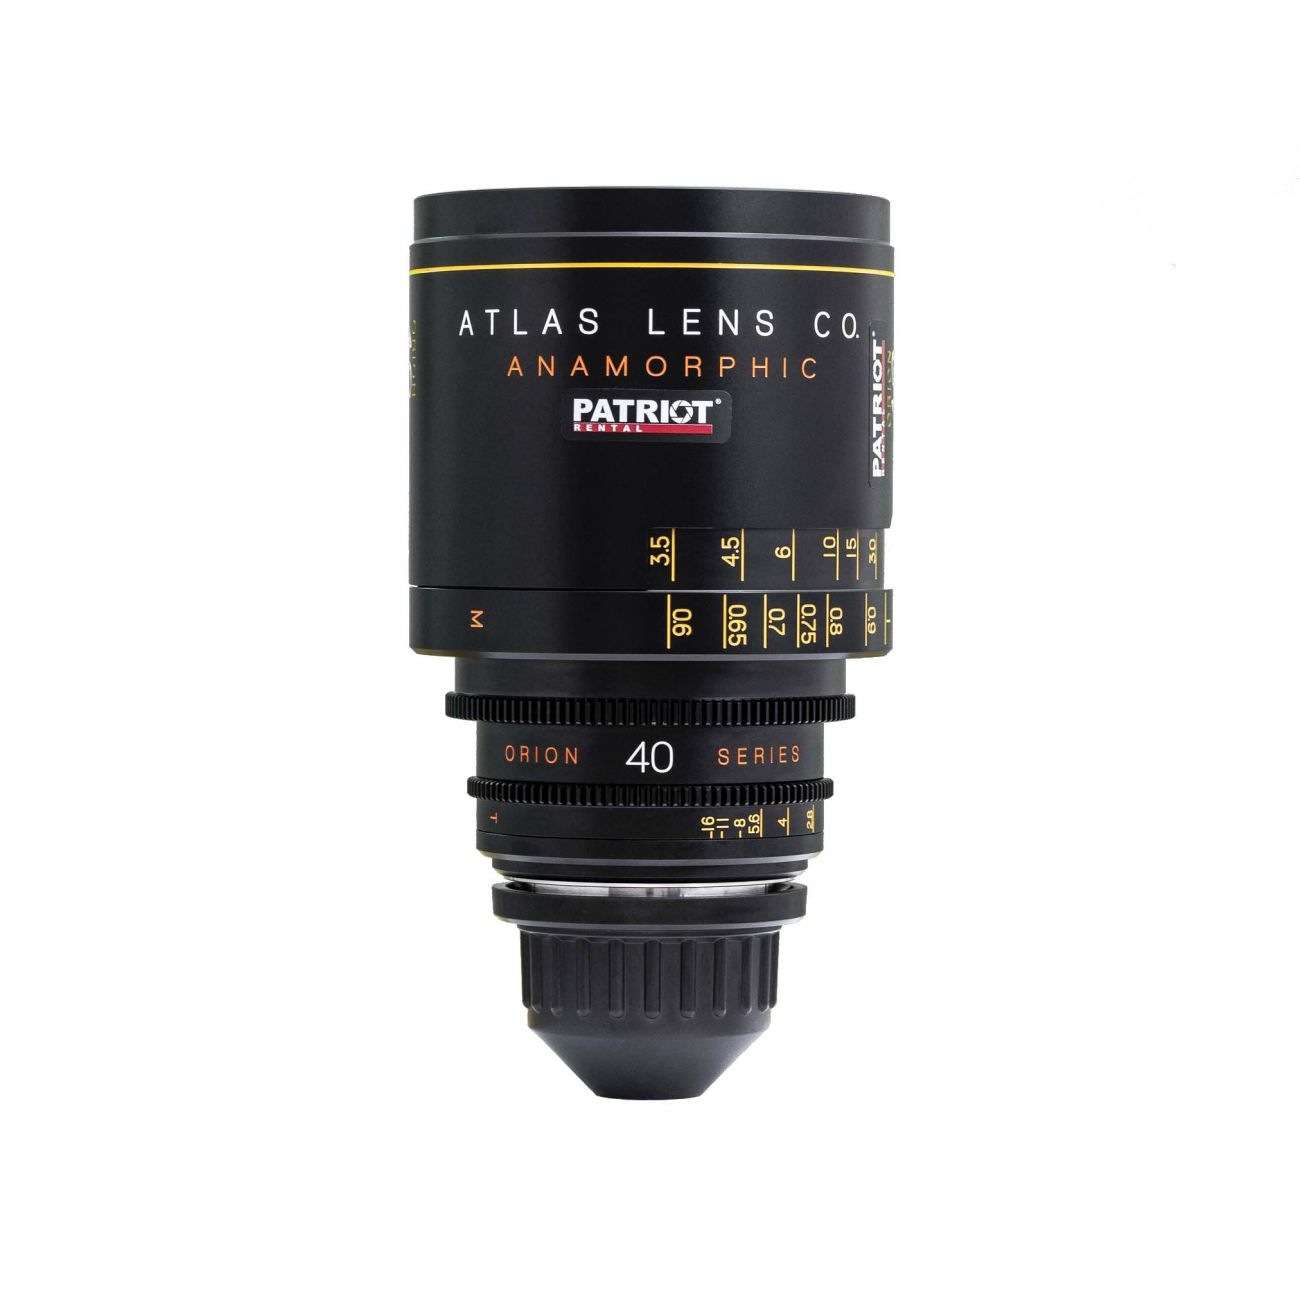 40mm ORION ATLAS SERIES ANAMORPHIC 2x lens T2